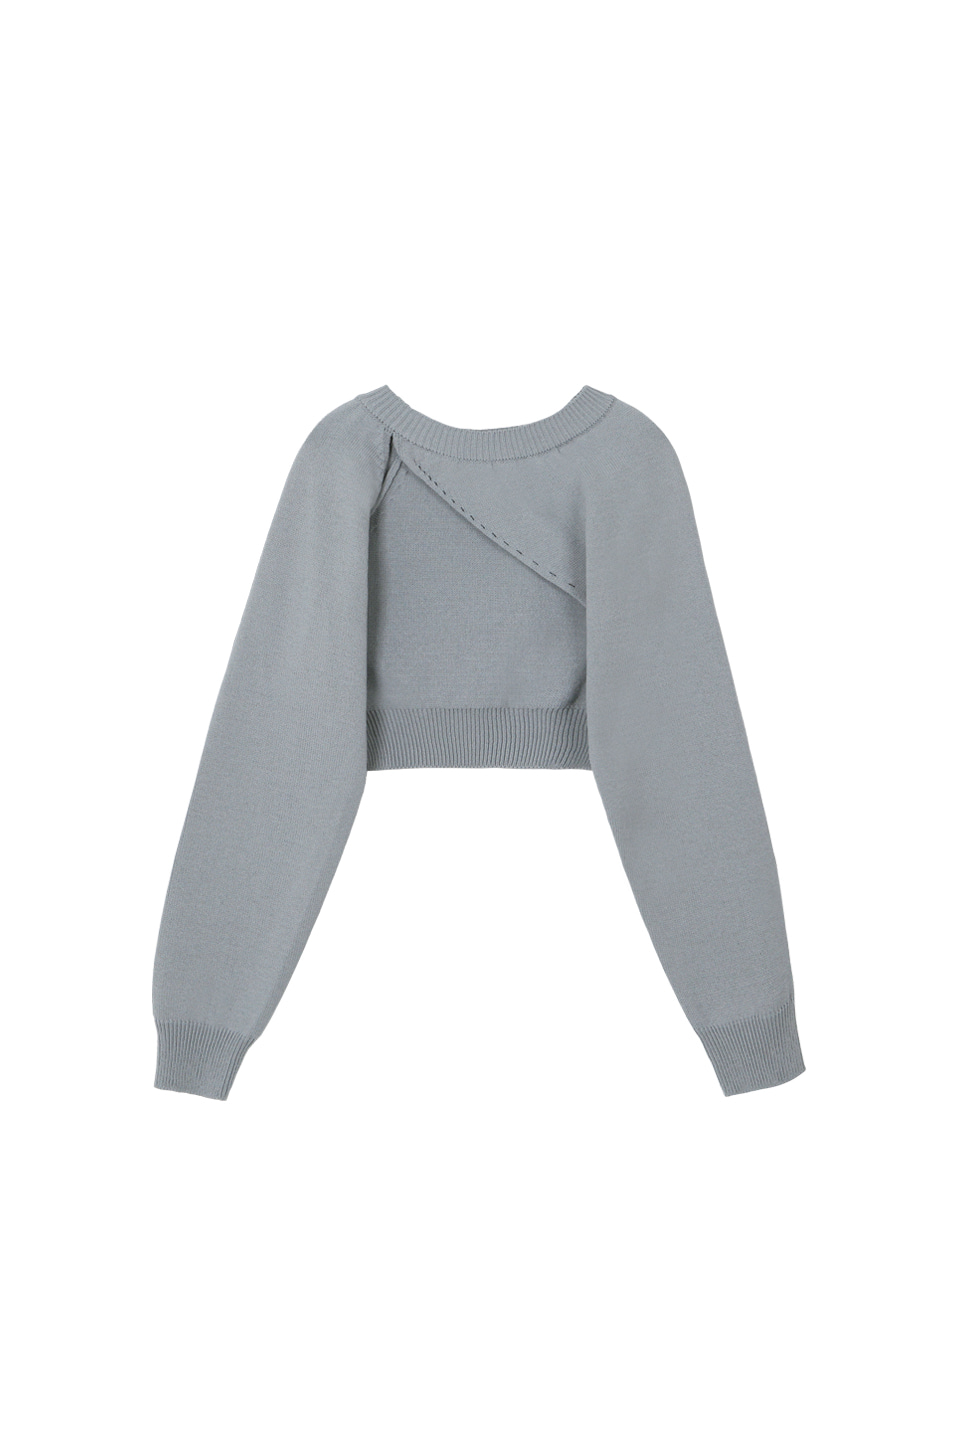 (3차재입고) SS UNBALANCE BOLERO KNIT TOP - GRAY